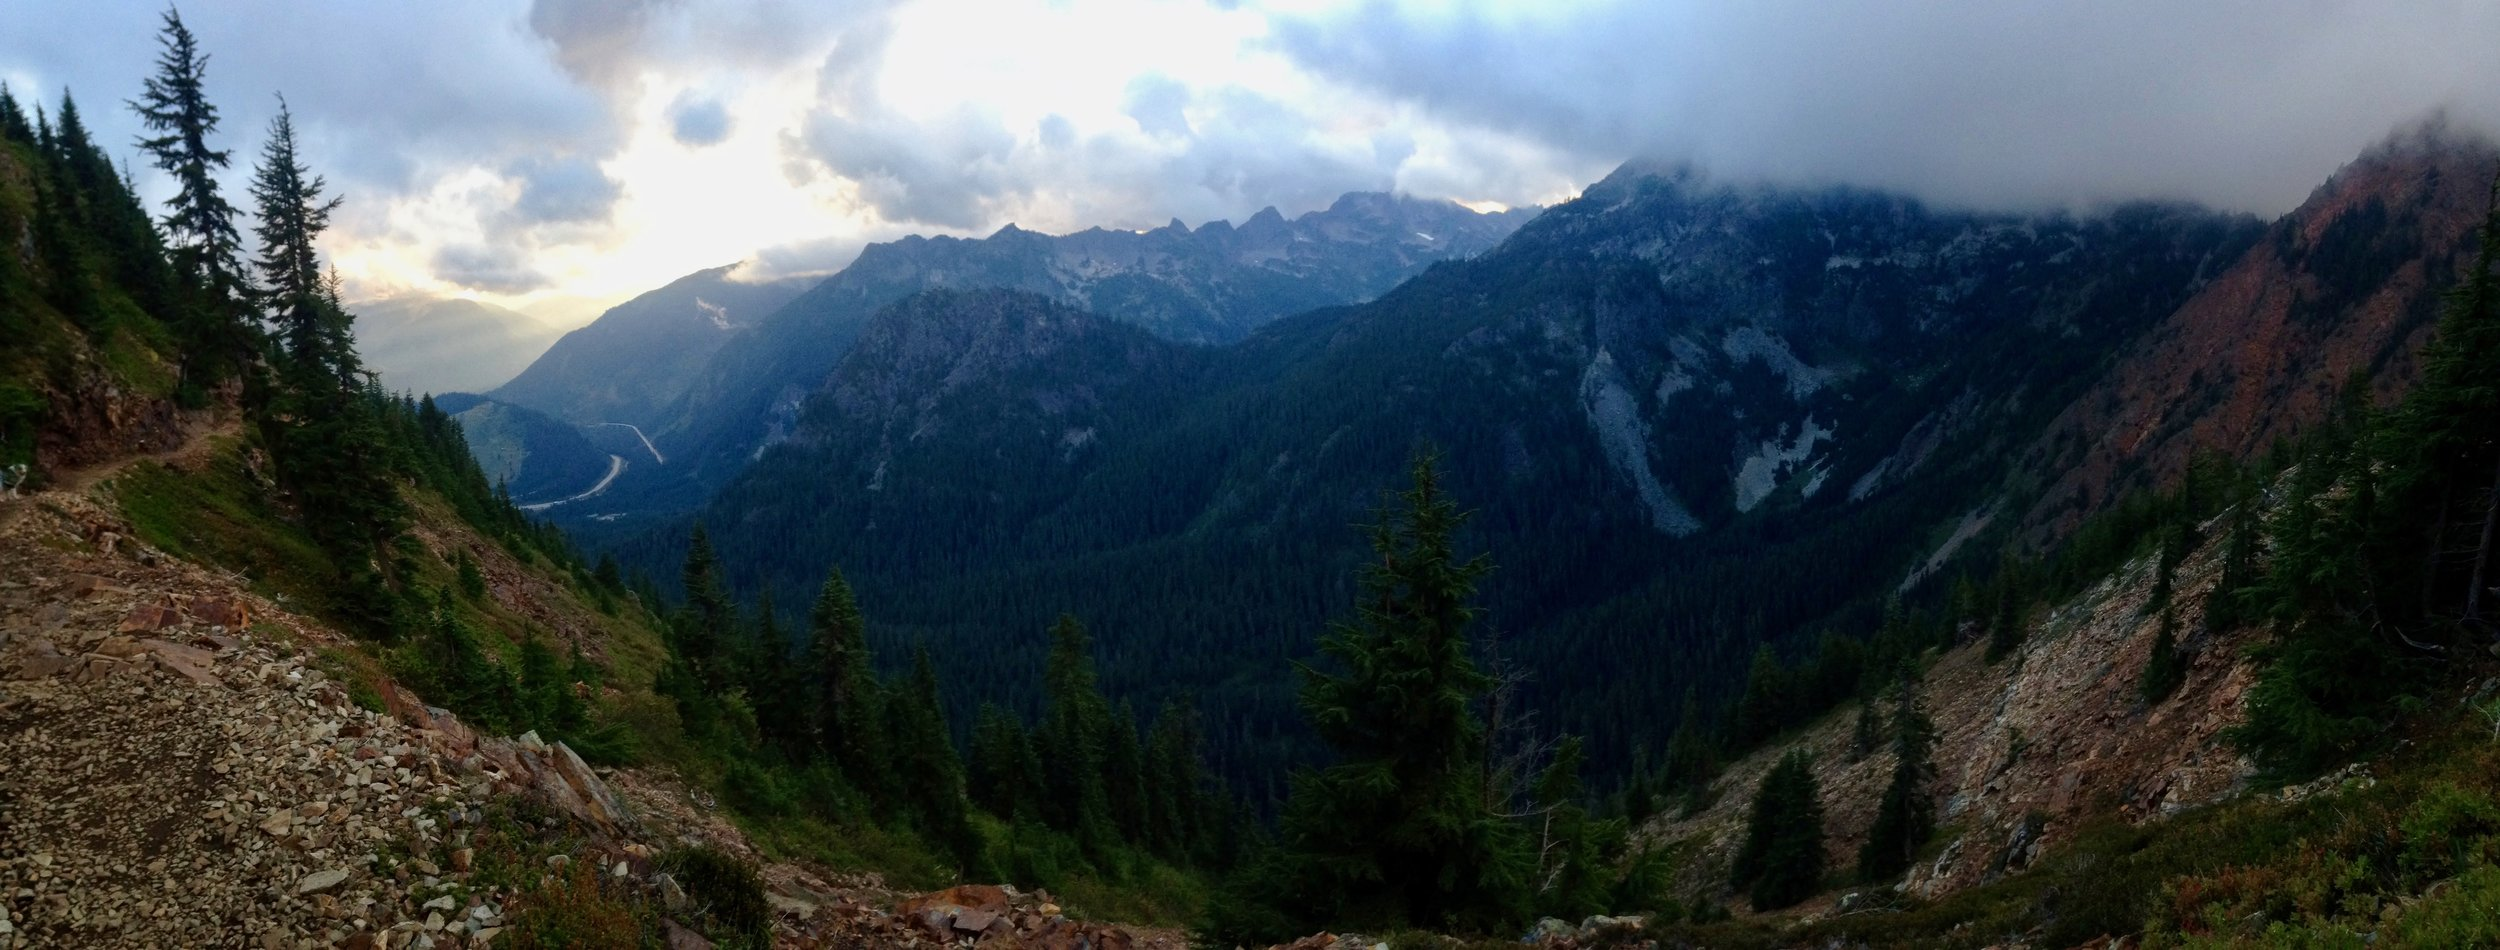 Snoqualmie National Forest, WA